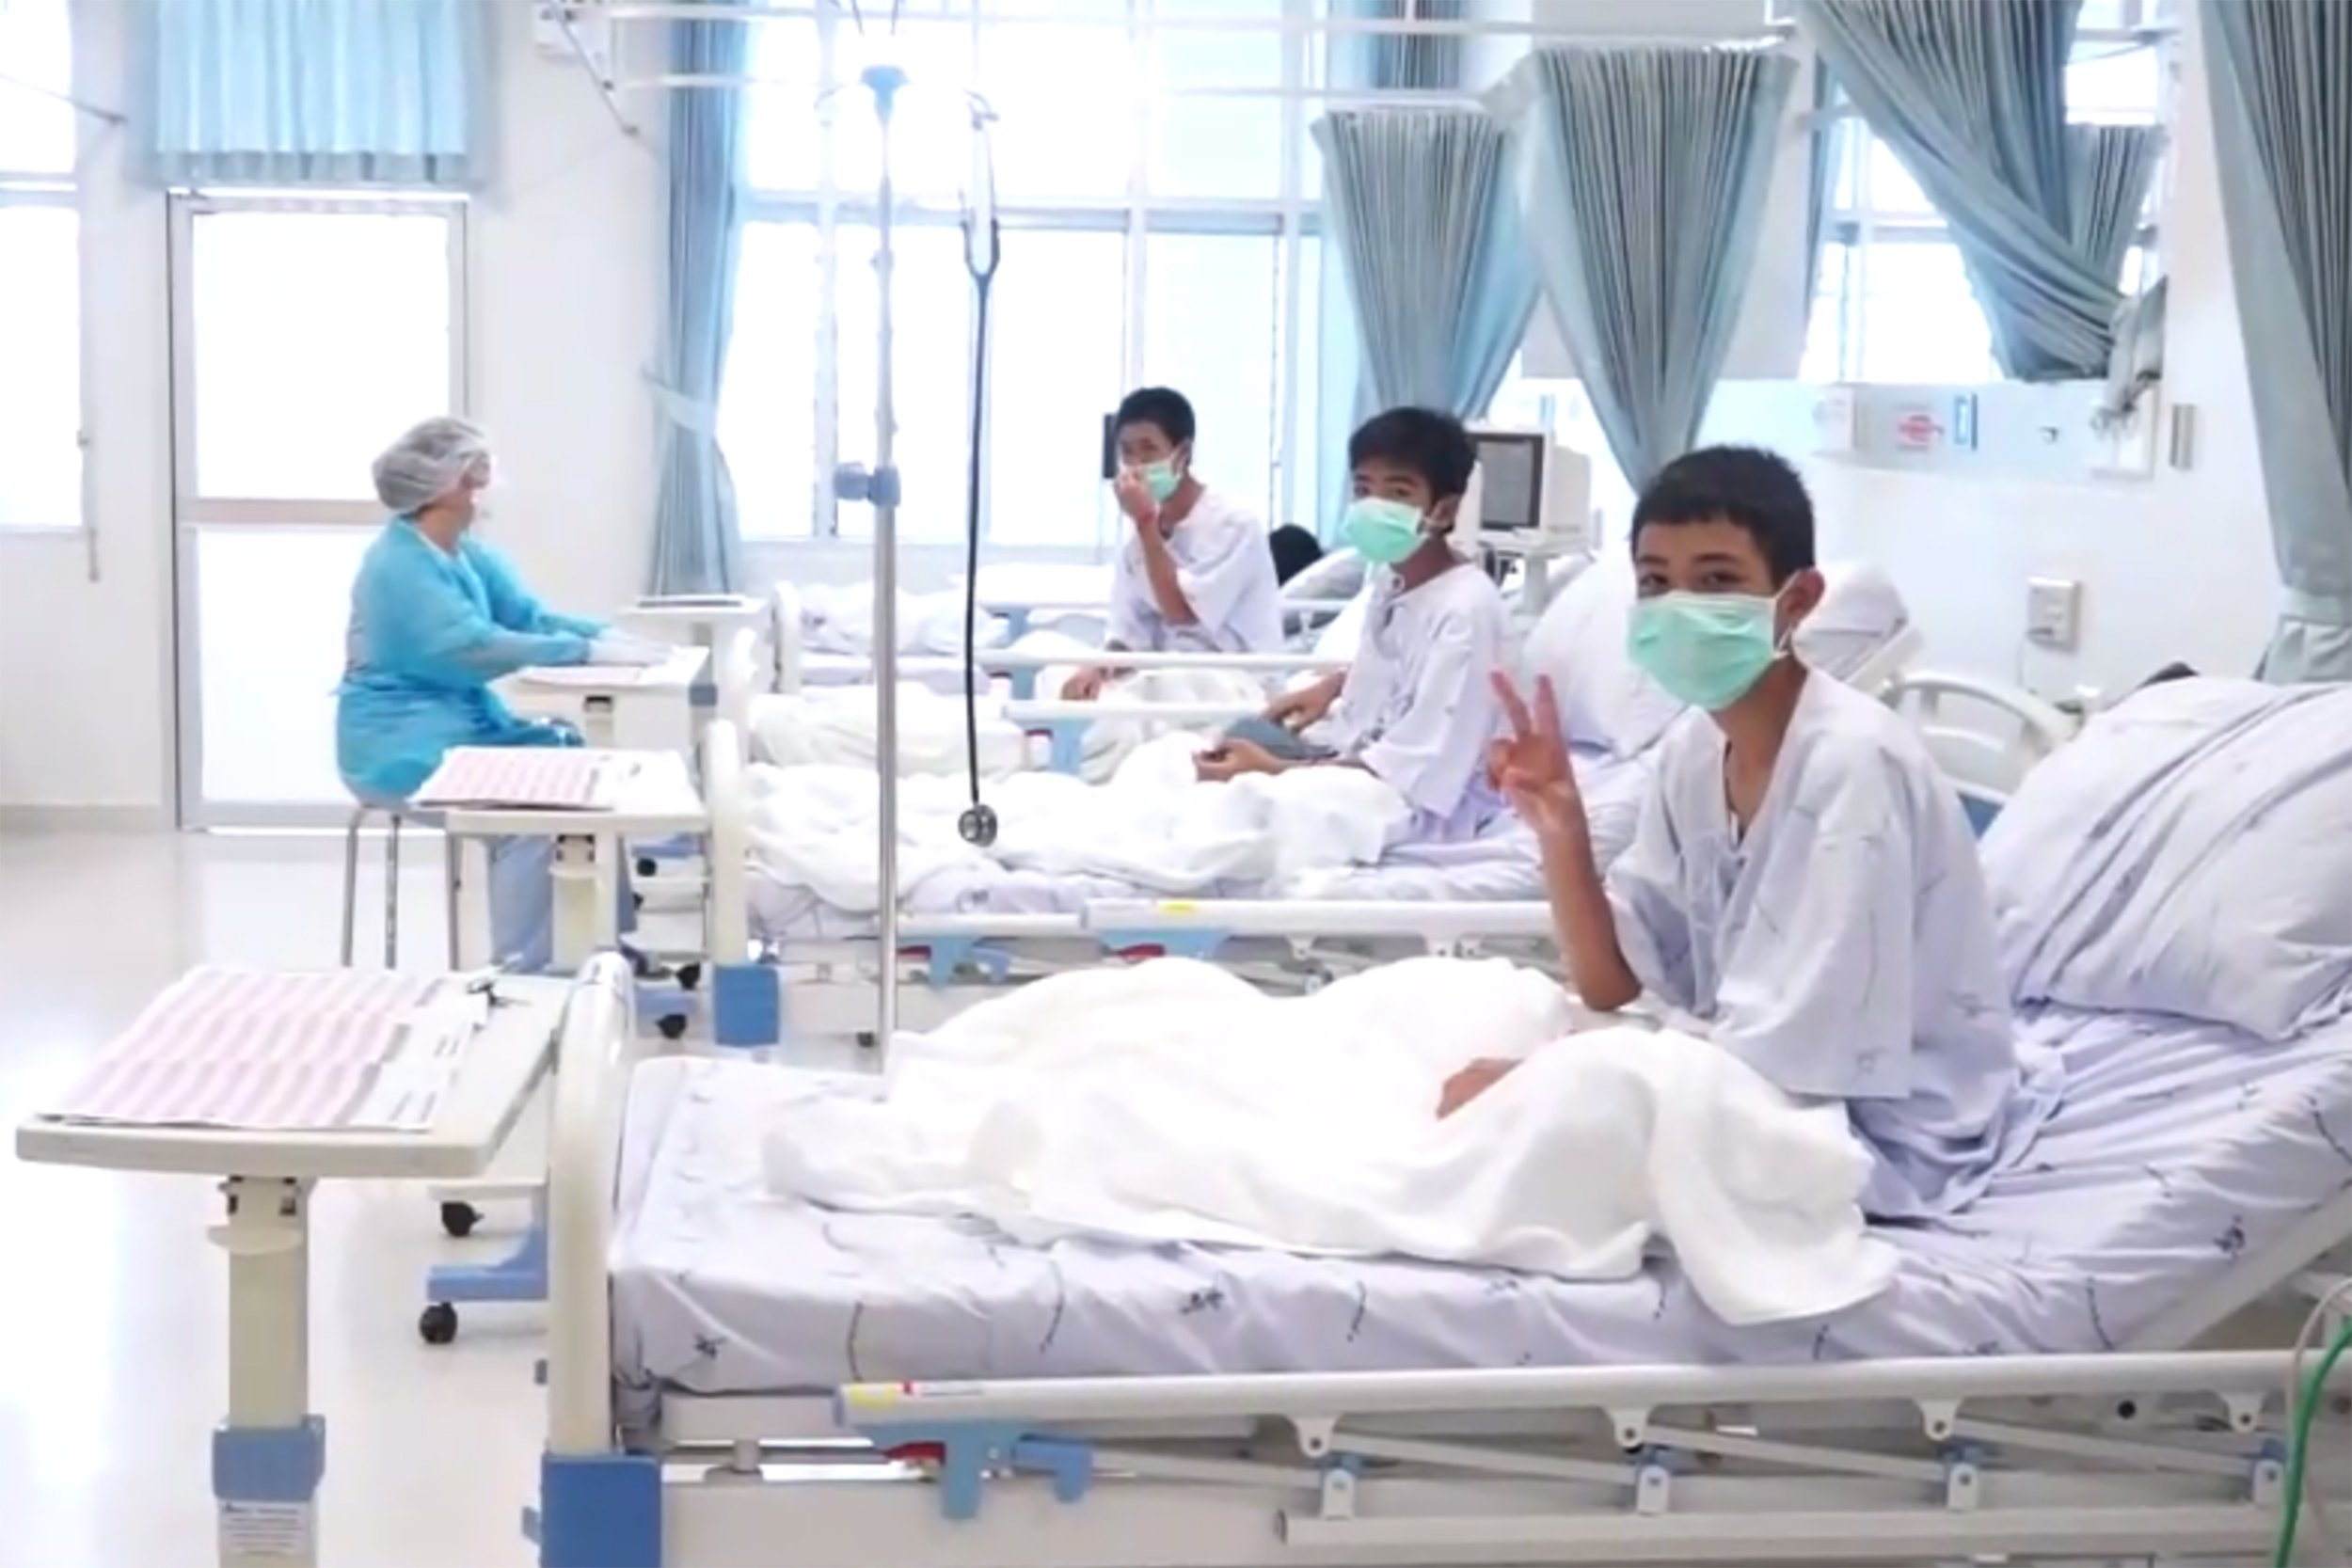 Thai cave boys give victory signs from hospital beds in isolation ward